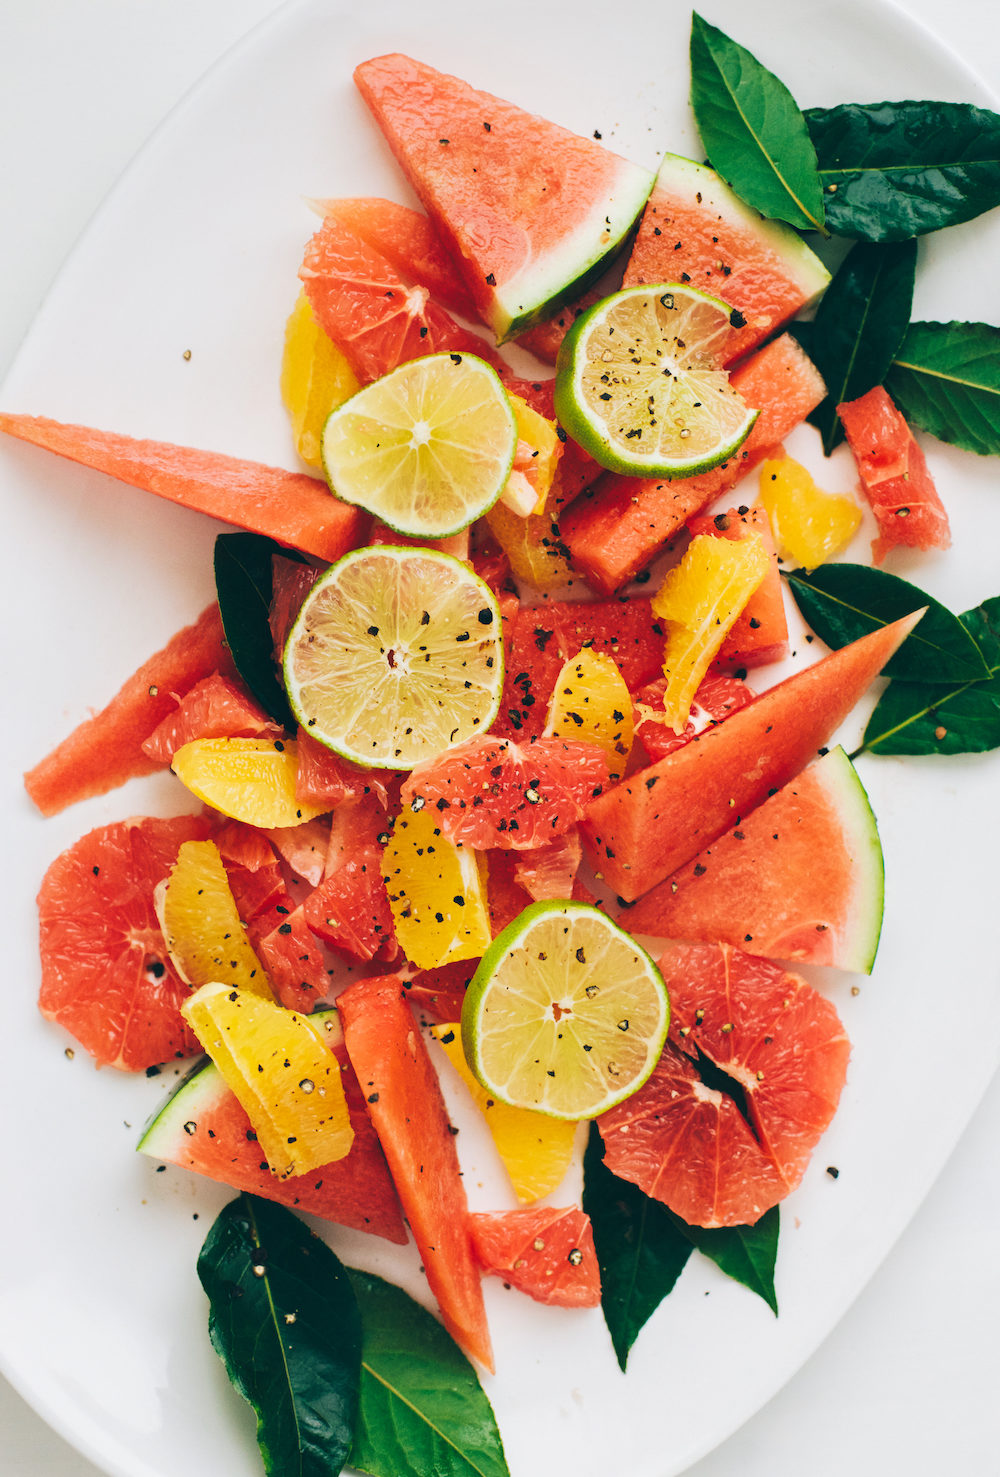 Winter Citrus Watermelon Salad with Fresh Bay Laurel